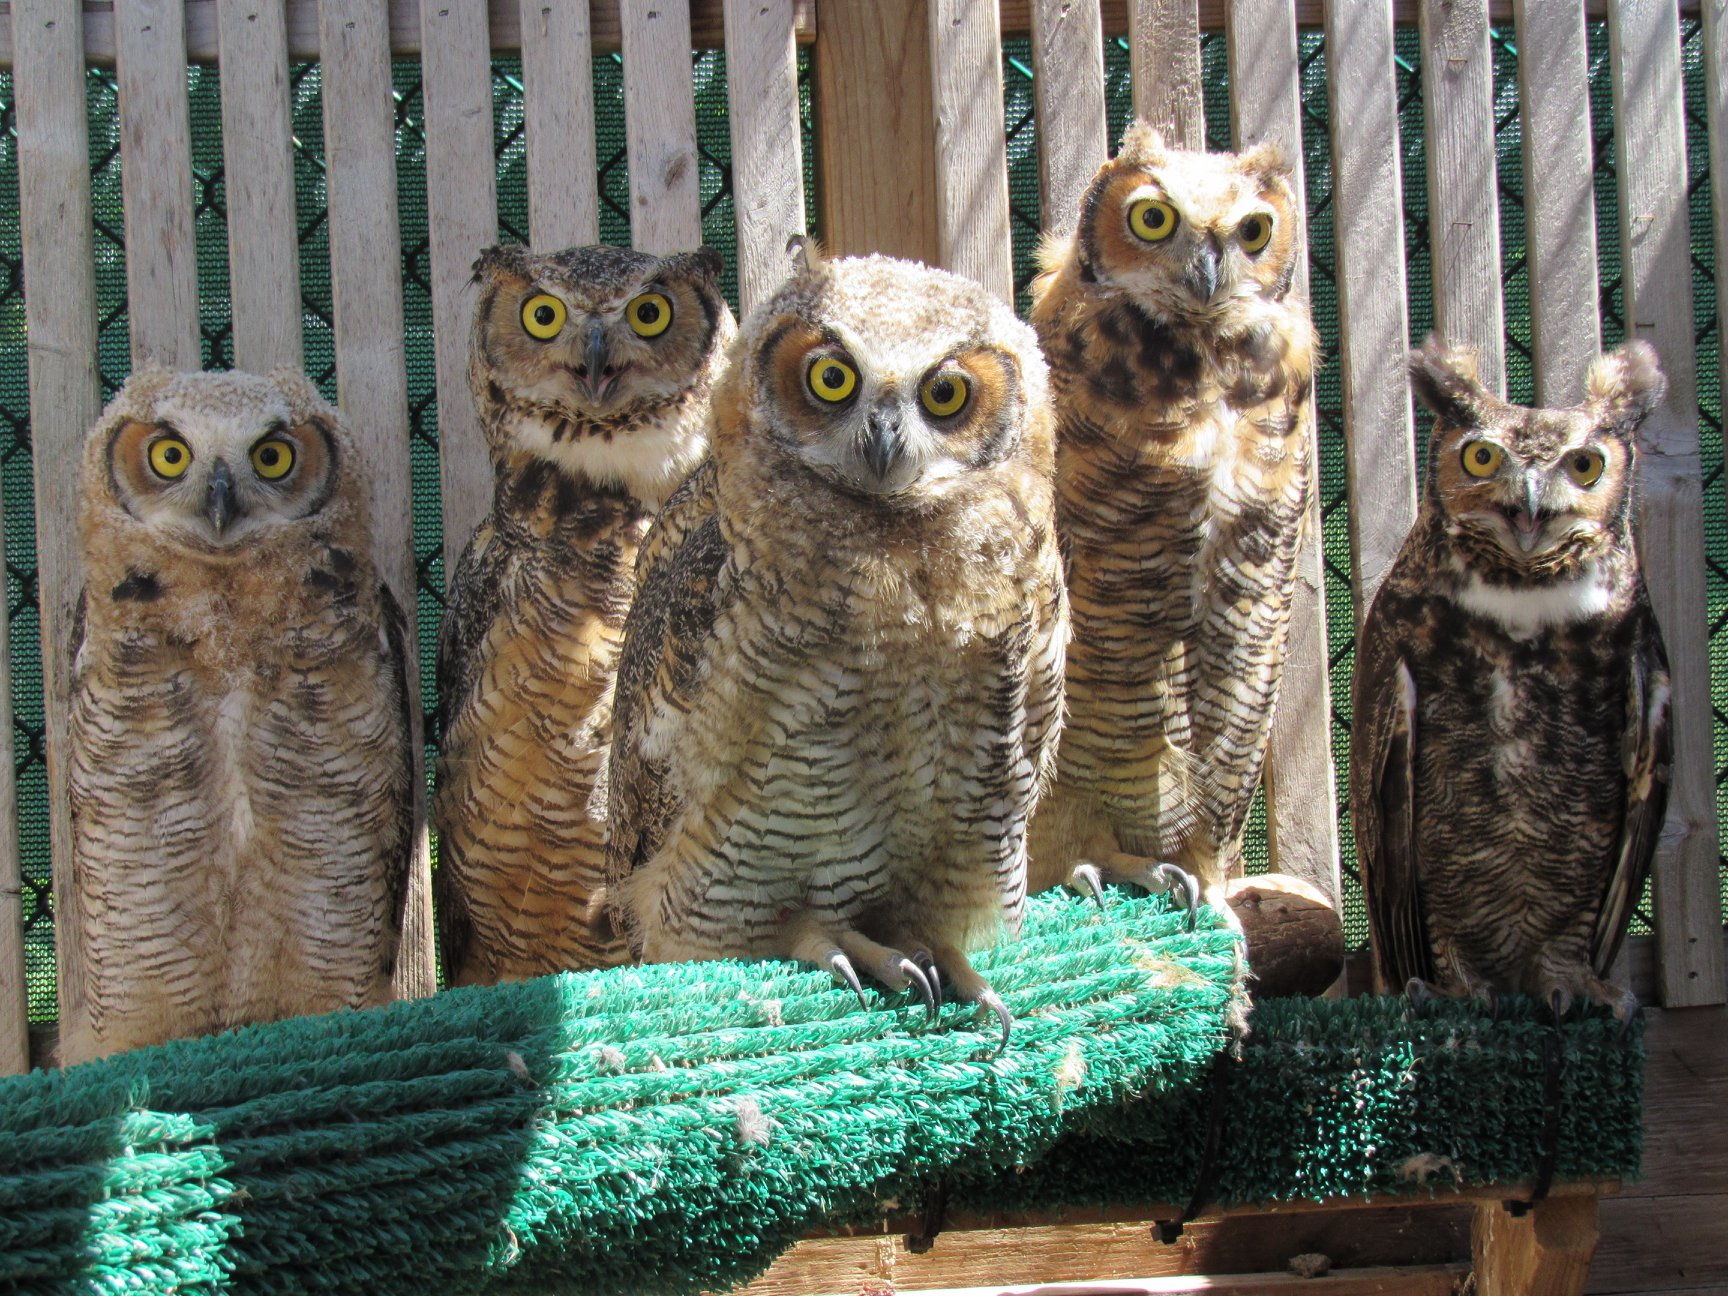 Owlets growing up with each other and their foster dad.